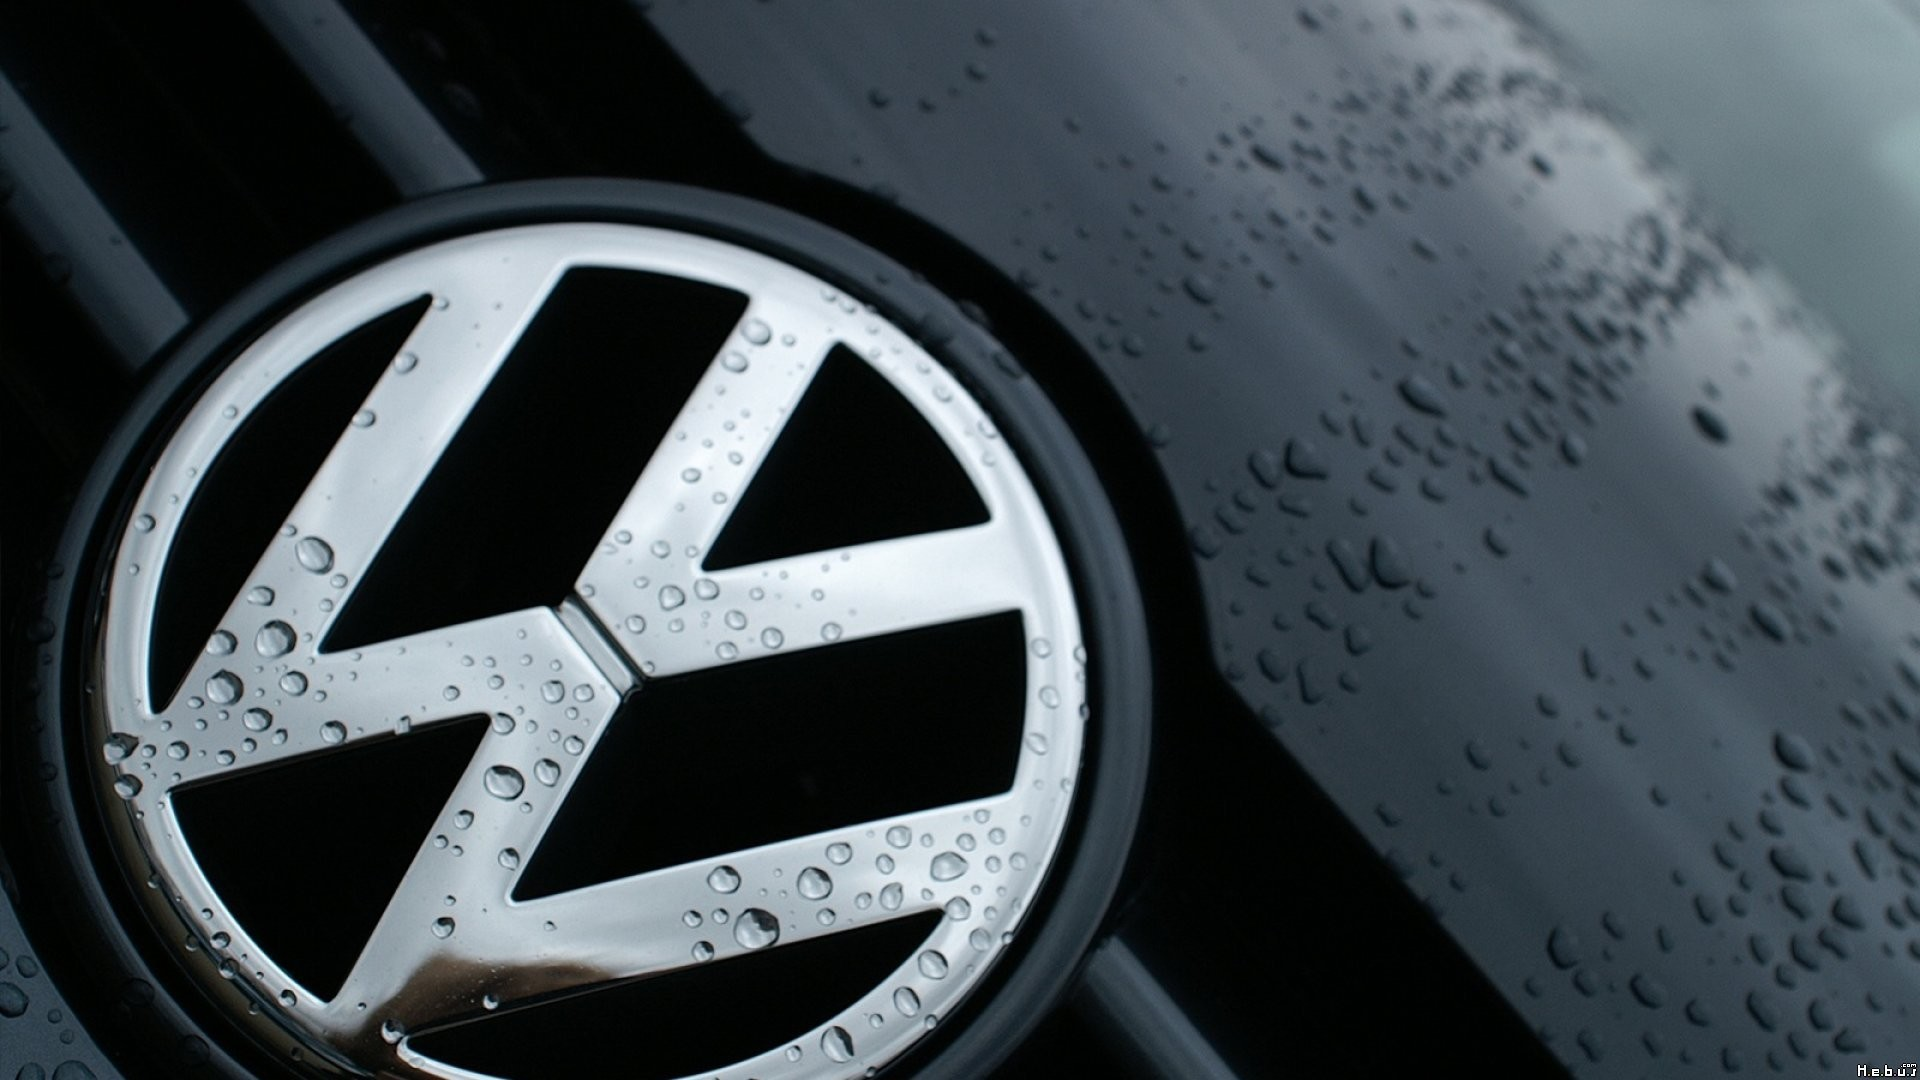 Res: 1920x1080,  Volkswagen Logo Wallpapers 2013 - Vdub News.com